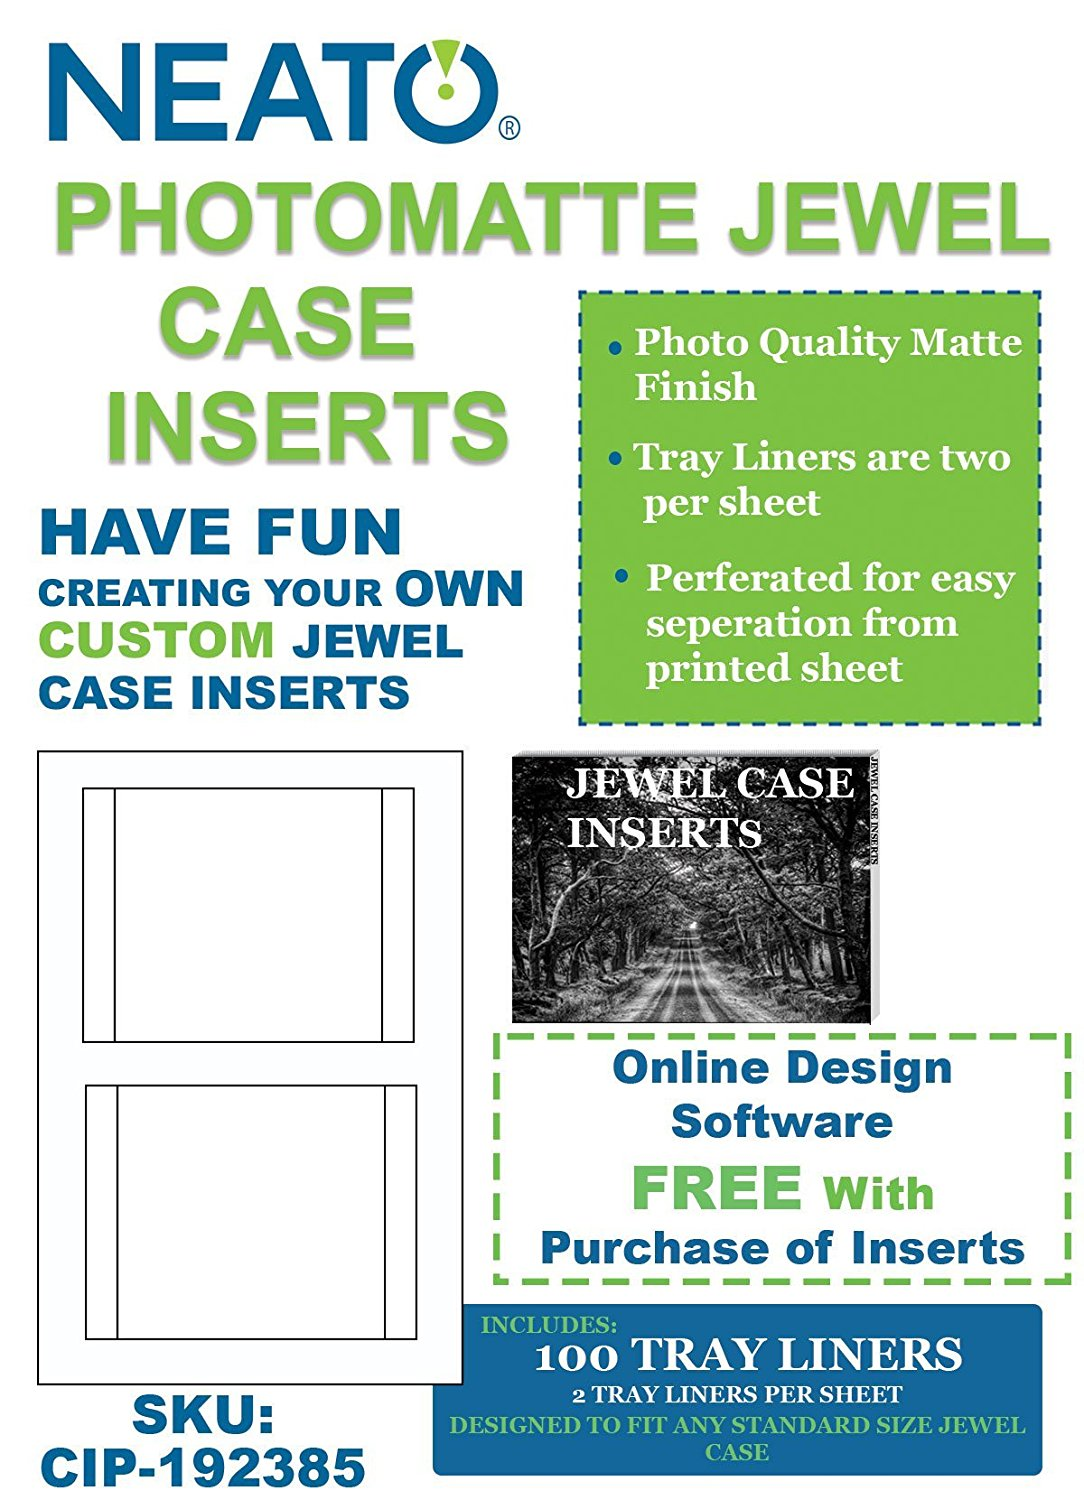 Neato PhotoMatte Jewel Case Inserts, 100 Tray Liners, CIP-192385 - Online Design Access Code Included